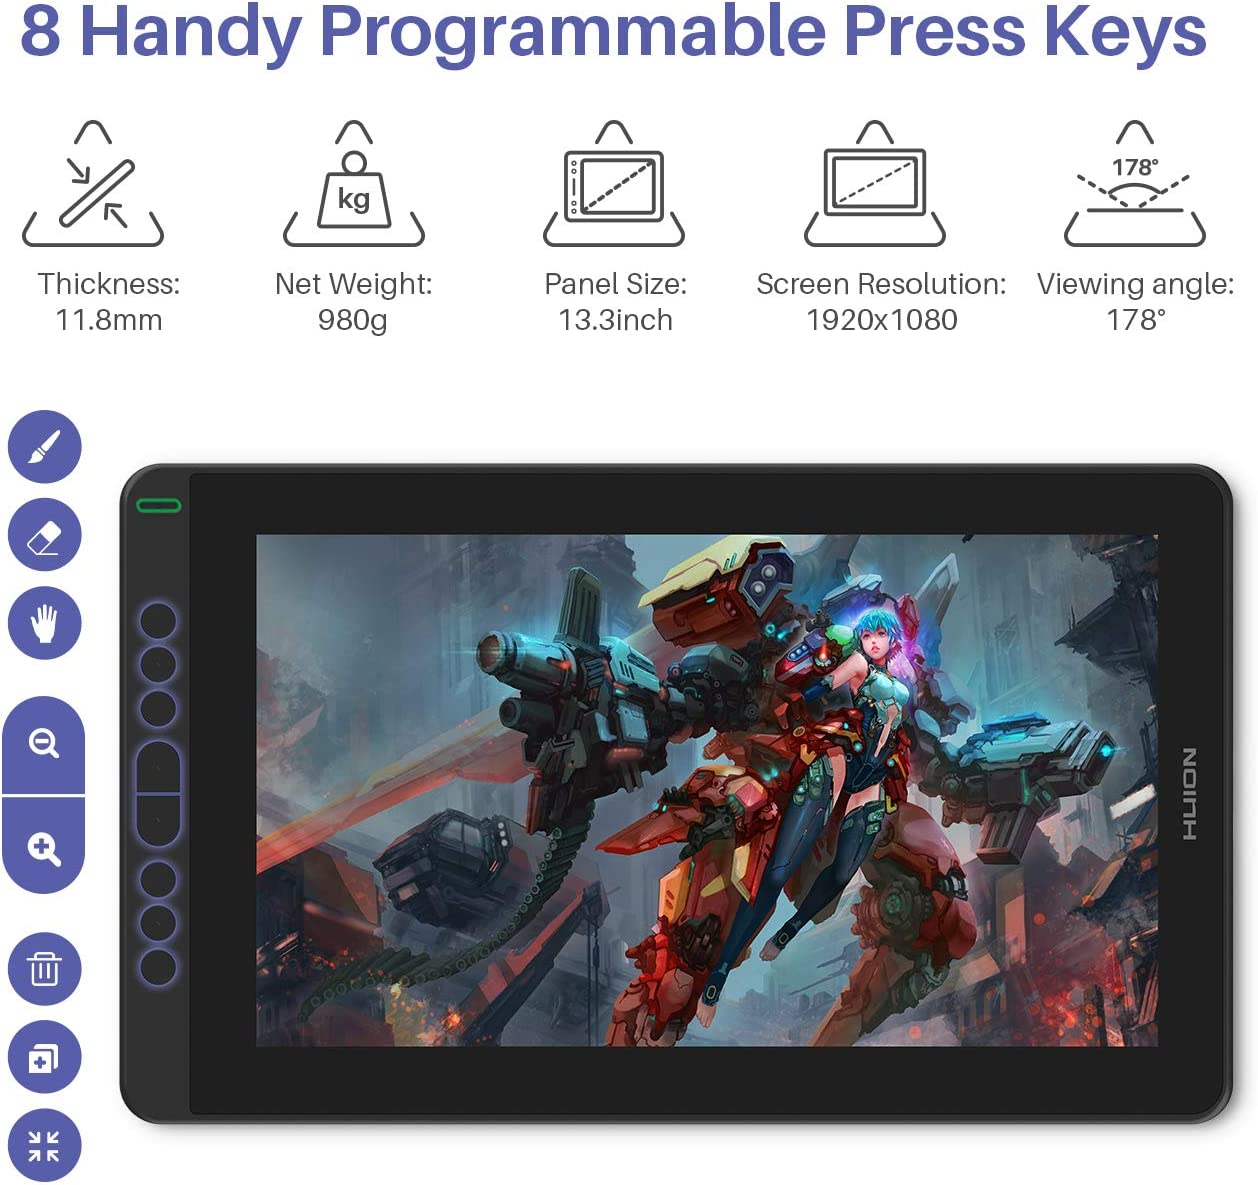 2020 HUION Kamvas 13 Android Support Graphics Drawing Tablet Monitor with Full Laminated Screen Battery-Free Stylus 8192 Pressure Sensitivity Tilt 8 Express Keys Adjustable Stand-13.3inch, Black: Computers & Accessories